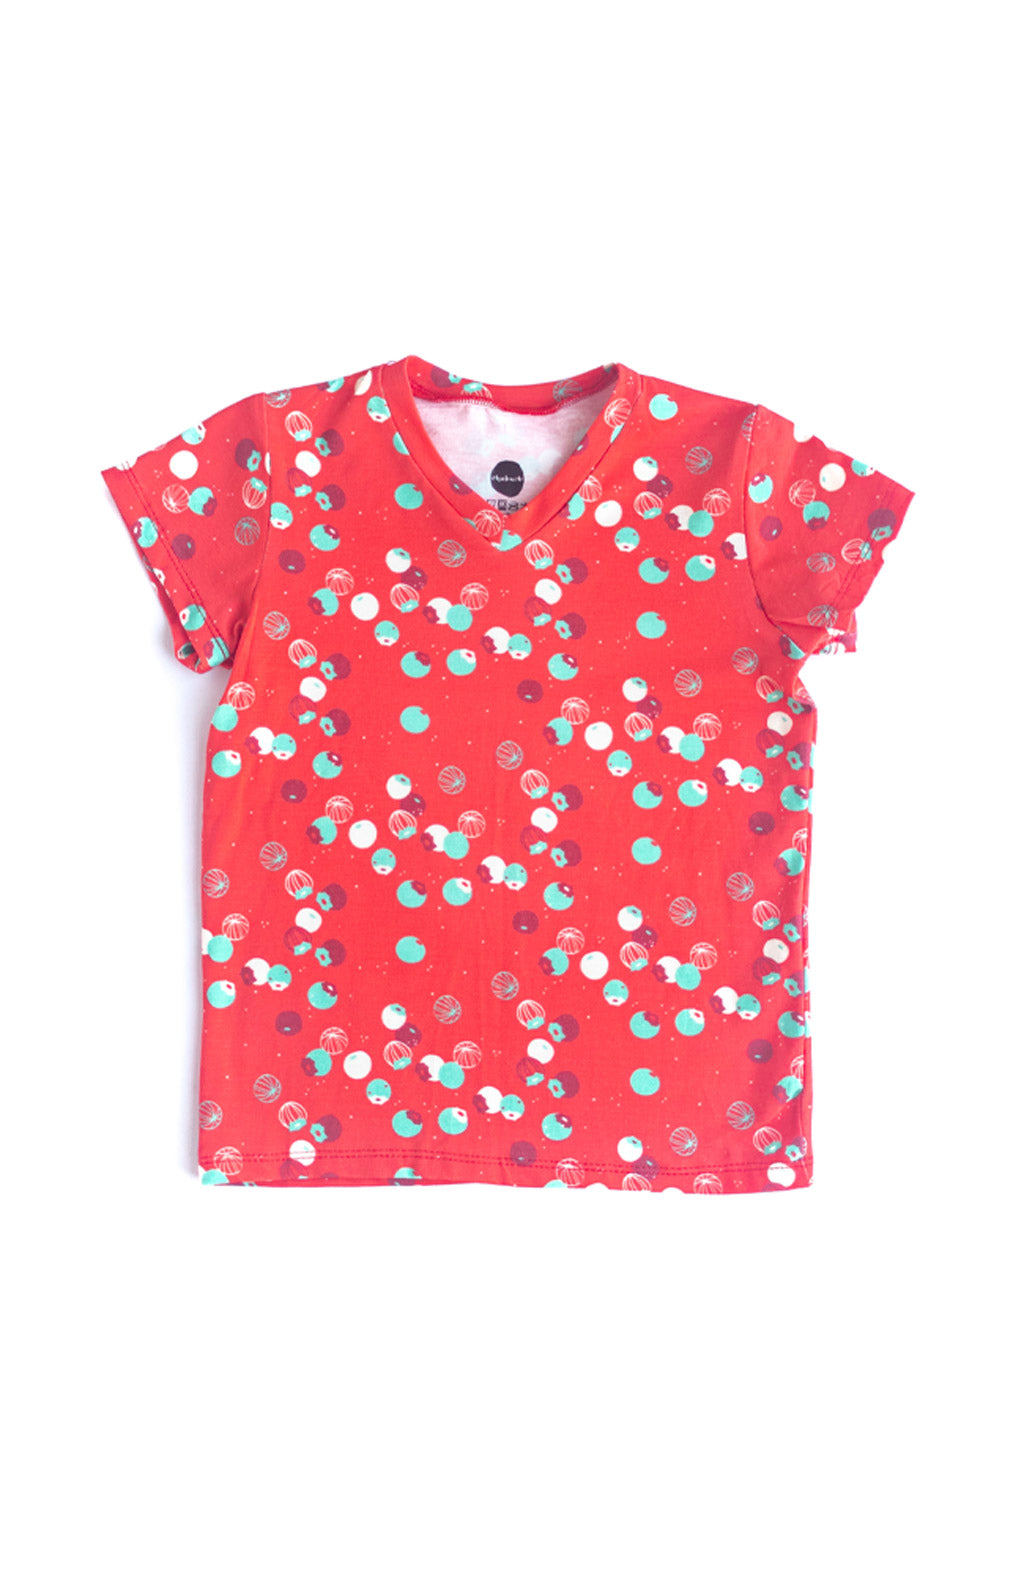 Tiny Berries Kids Tee in Ruby